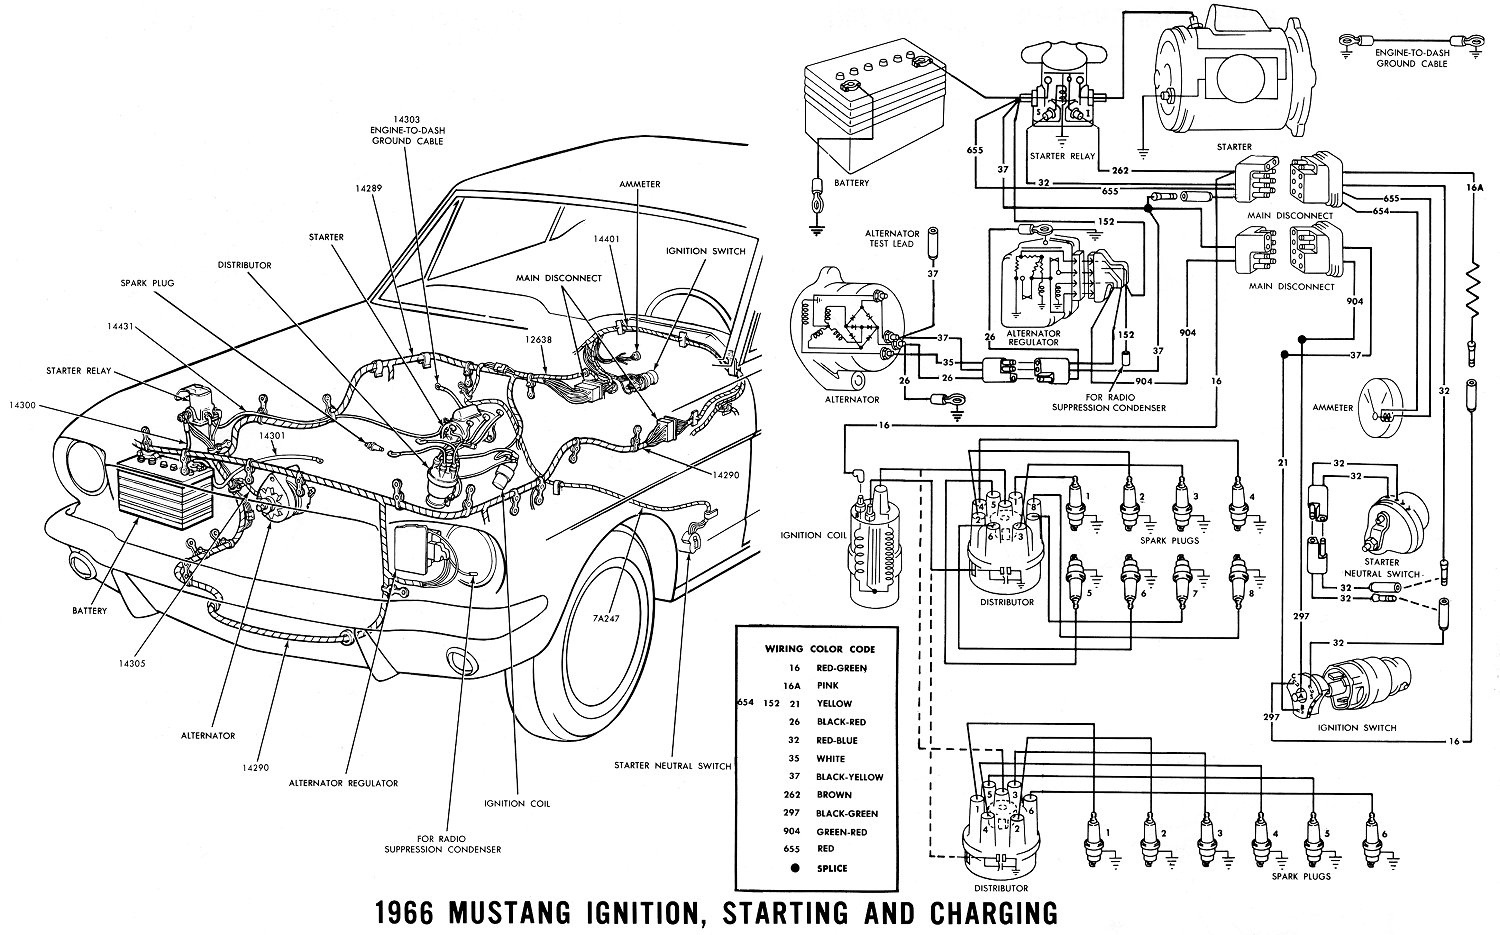 1970 mustang wiring diagram sc 1 st forel publishing company rh janscooker com 1970 ford mustang ignition switch wiring diagram Ford COP Ignition Wiring Diagrams